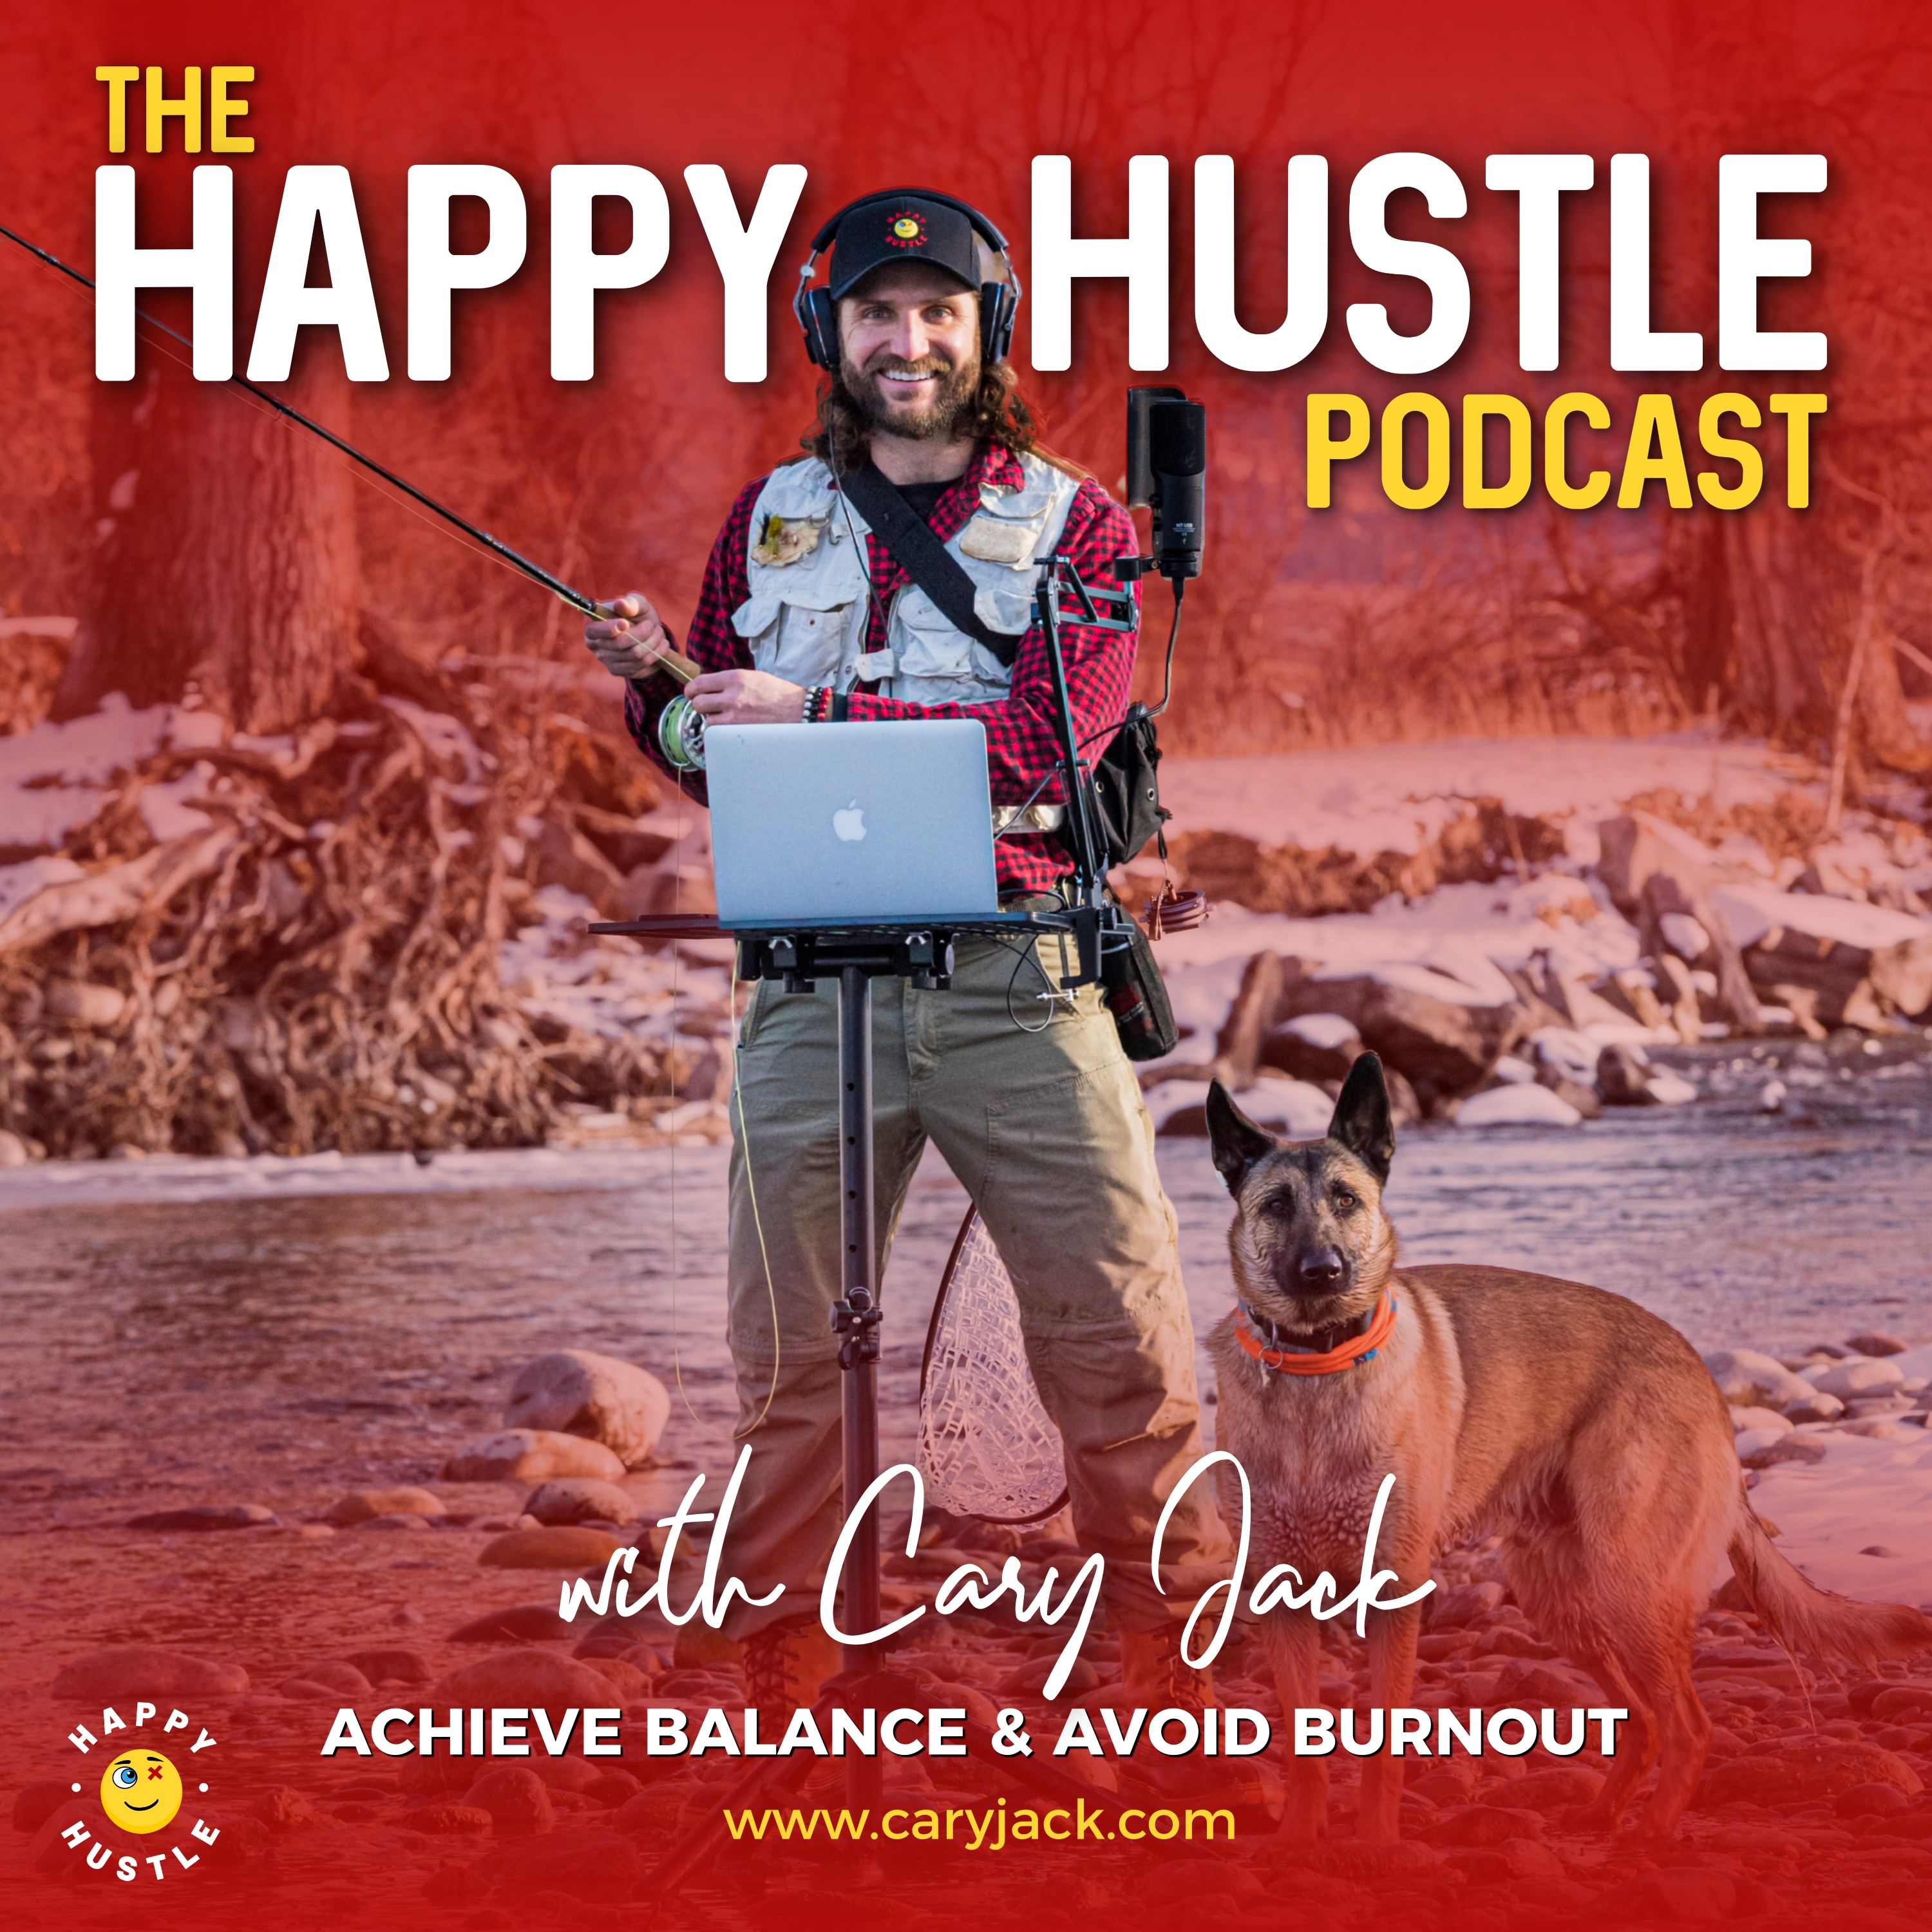 The Happy Hustle Podcast show art